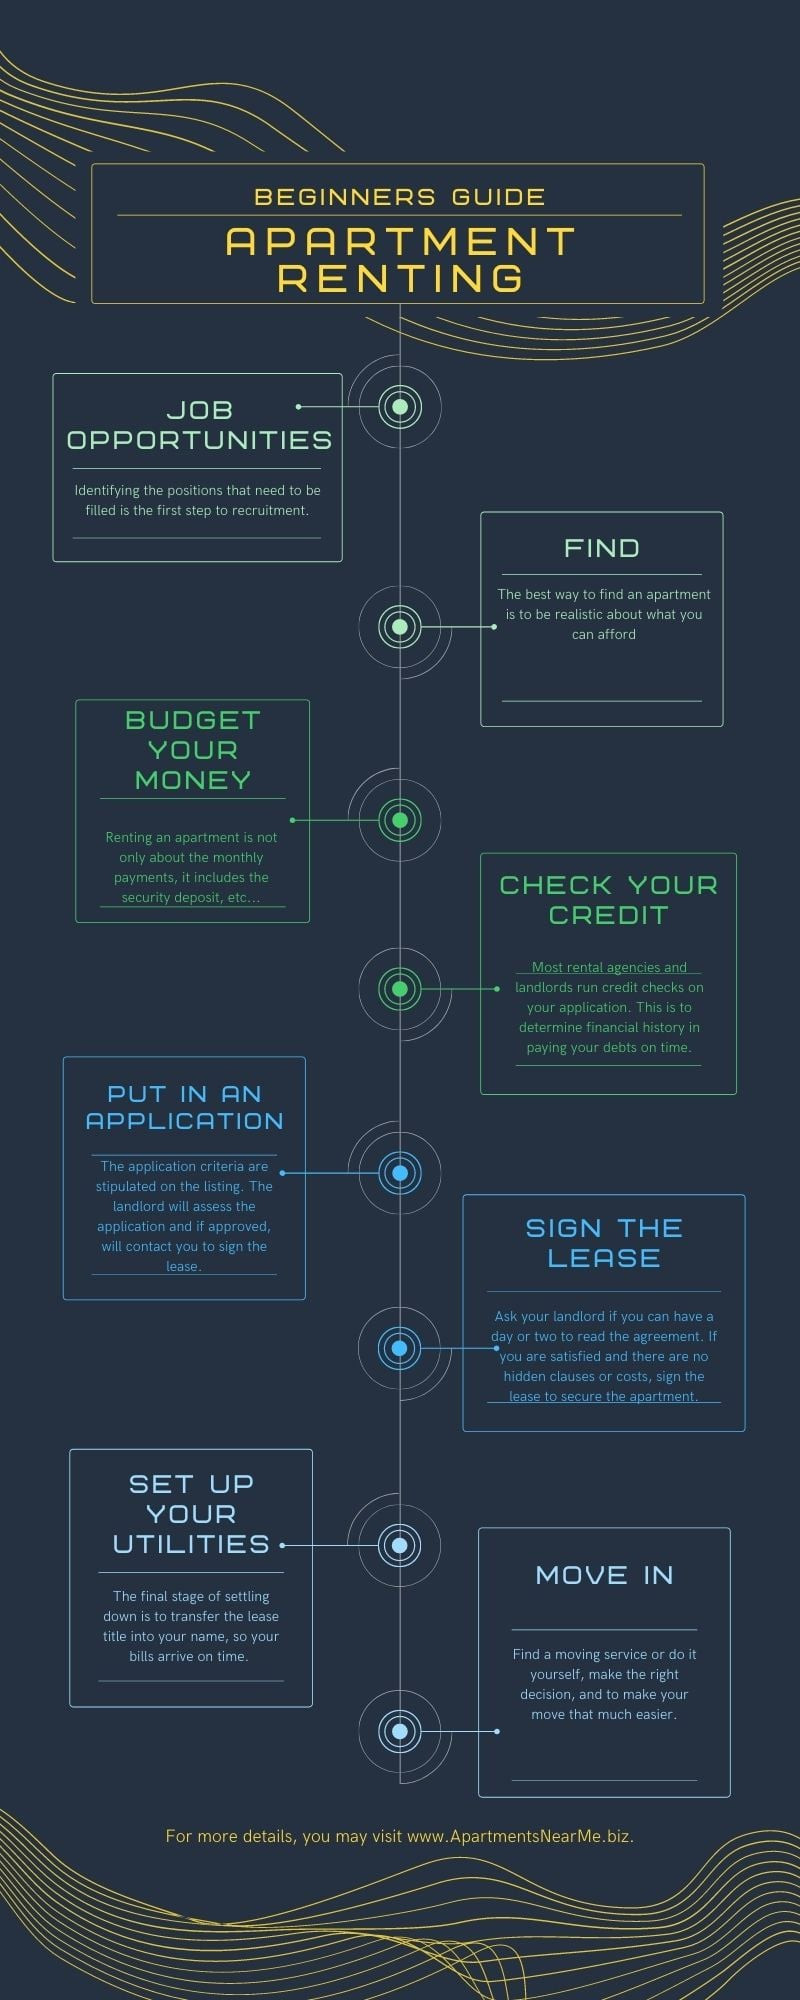 Infographic thoroughly explaining the process of renting an apartment from start to finish with 10 tips.